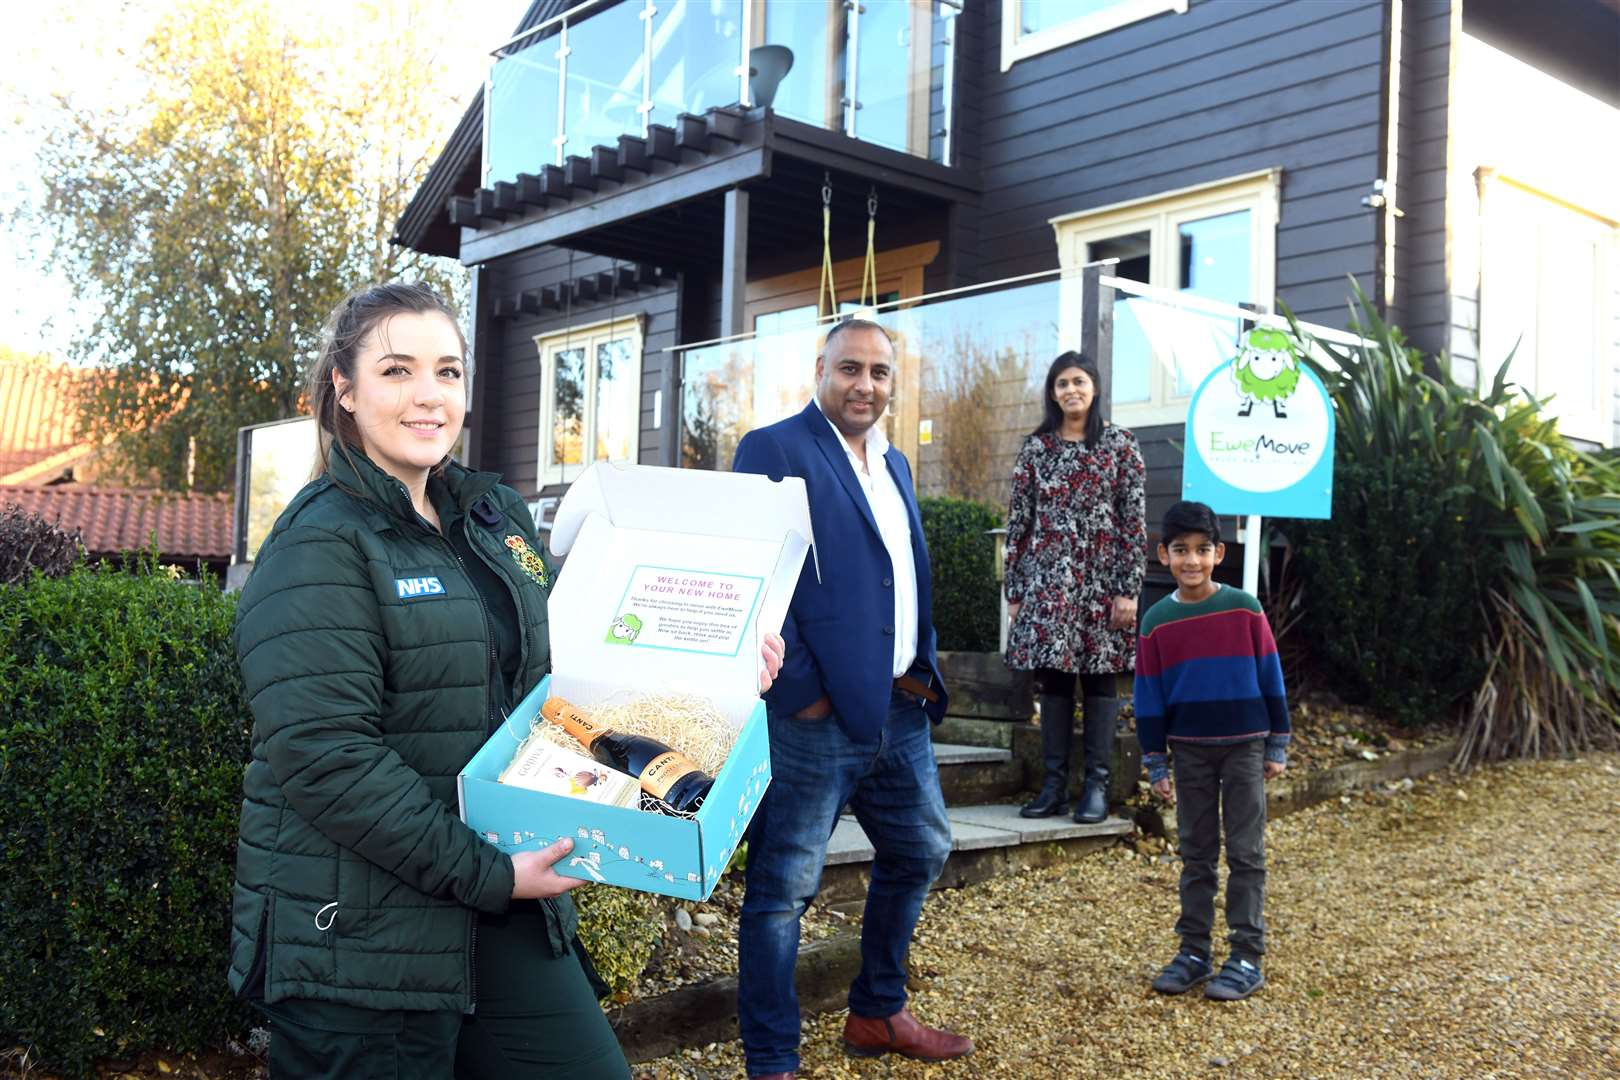 Estate Agent Pardip Choat is giving a free 1 month rental of a holiday let to NHS ambulance staff Bethanie Hutchison at Petney Lakes. Bethanie Hutchinson is pictured at the front with back left to right Pardip Choat, Panna Choat and Kian Choat 6. Picture: Adam Fairbrother